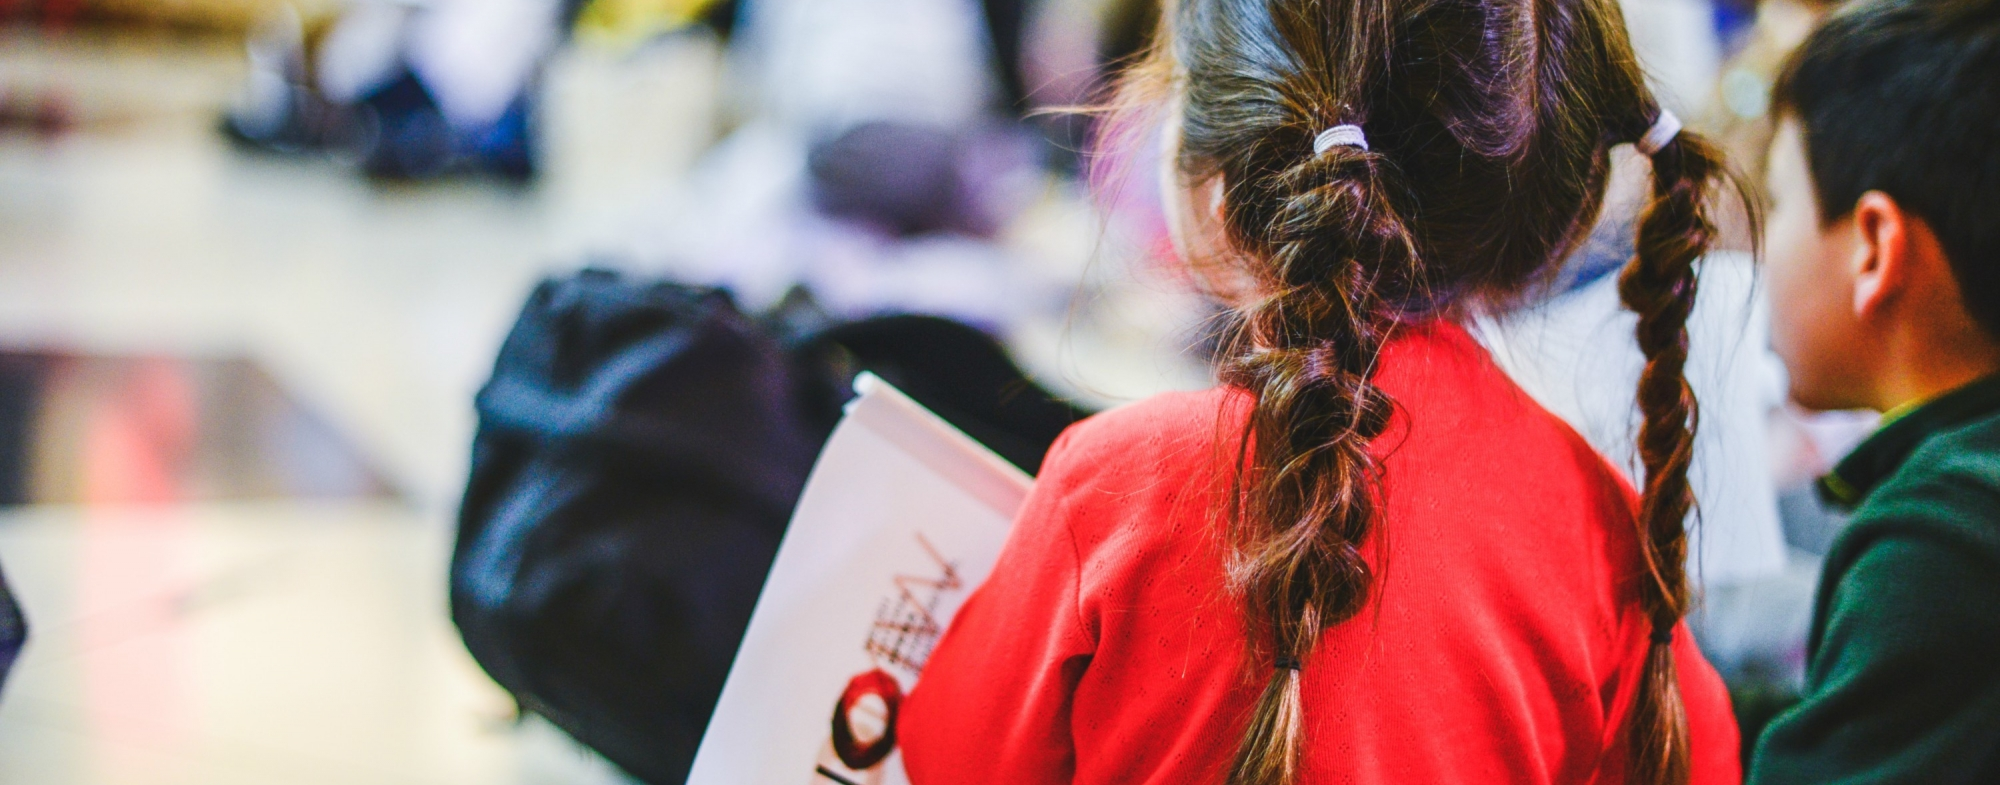 Back view of a little girl in a red t-shirt with long plaits.